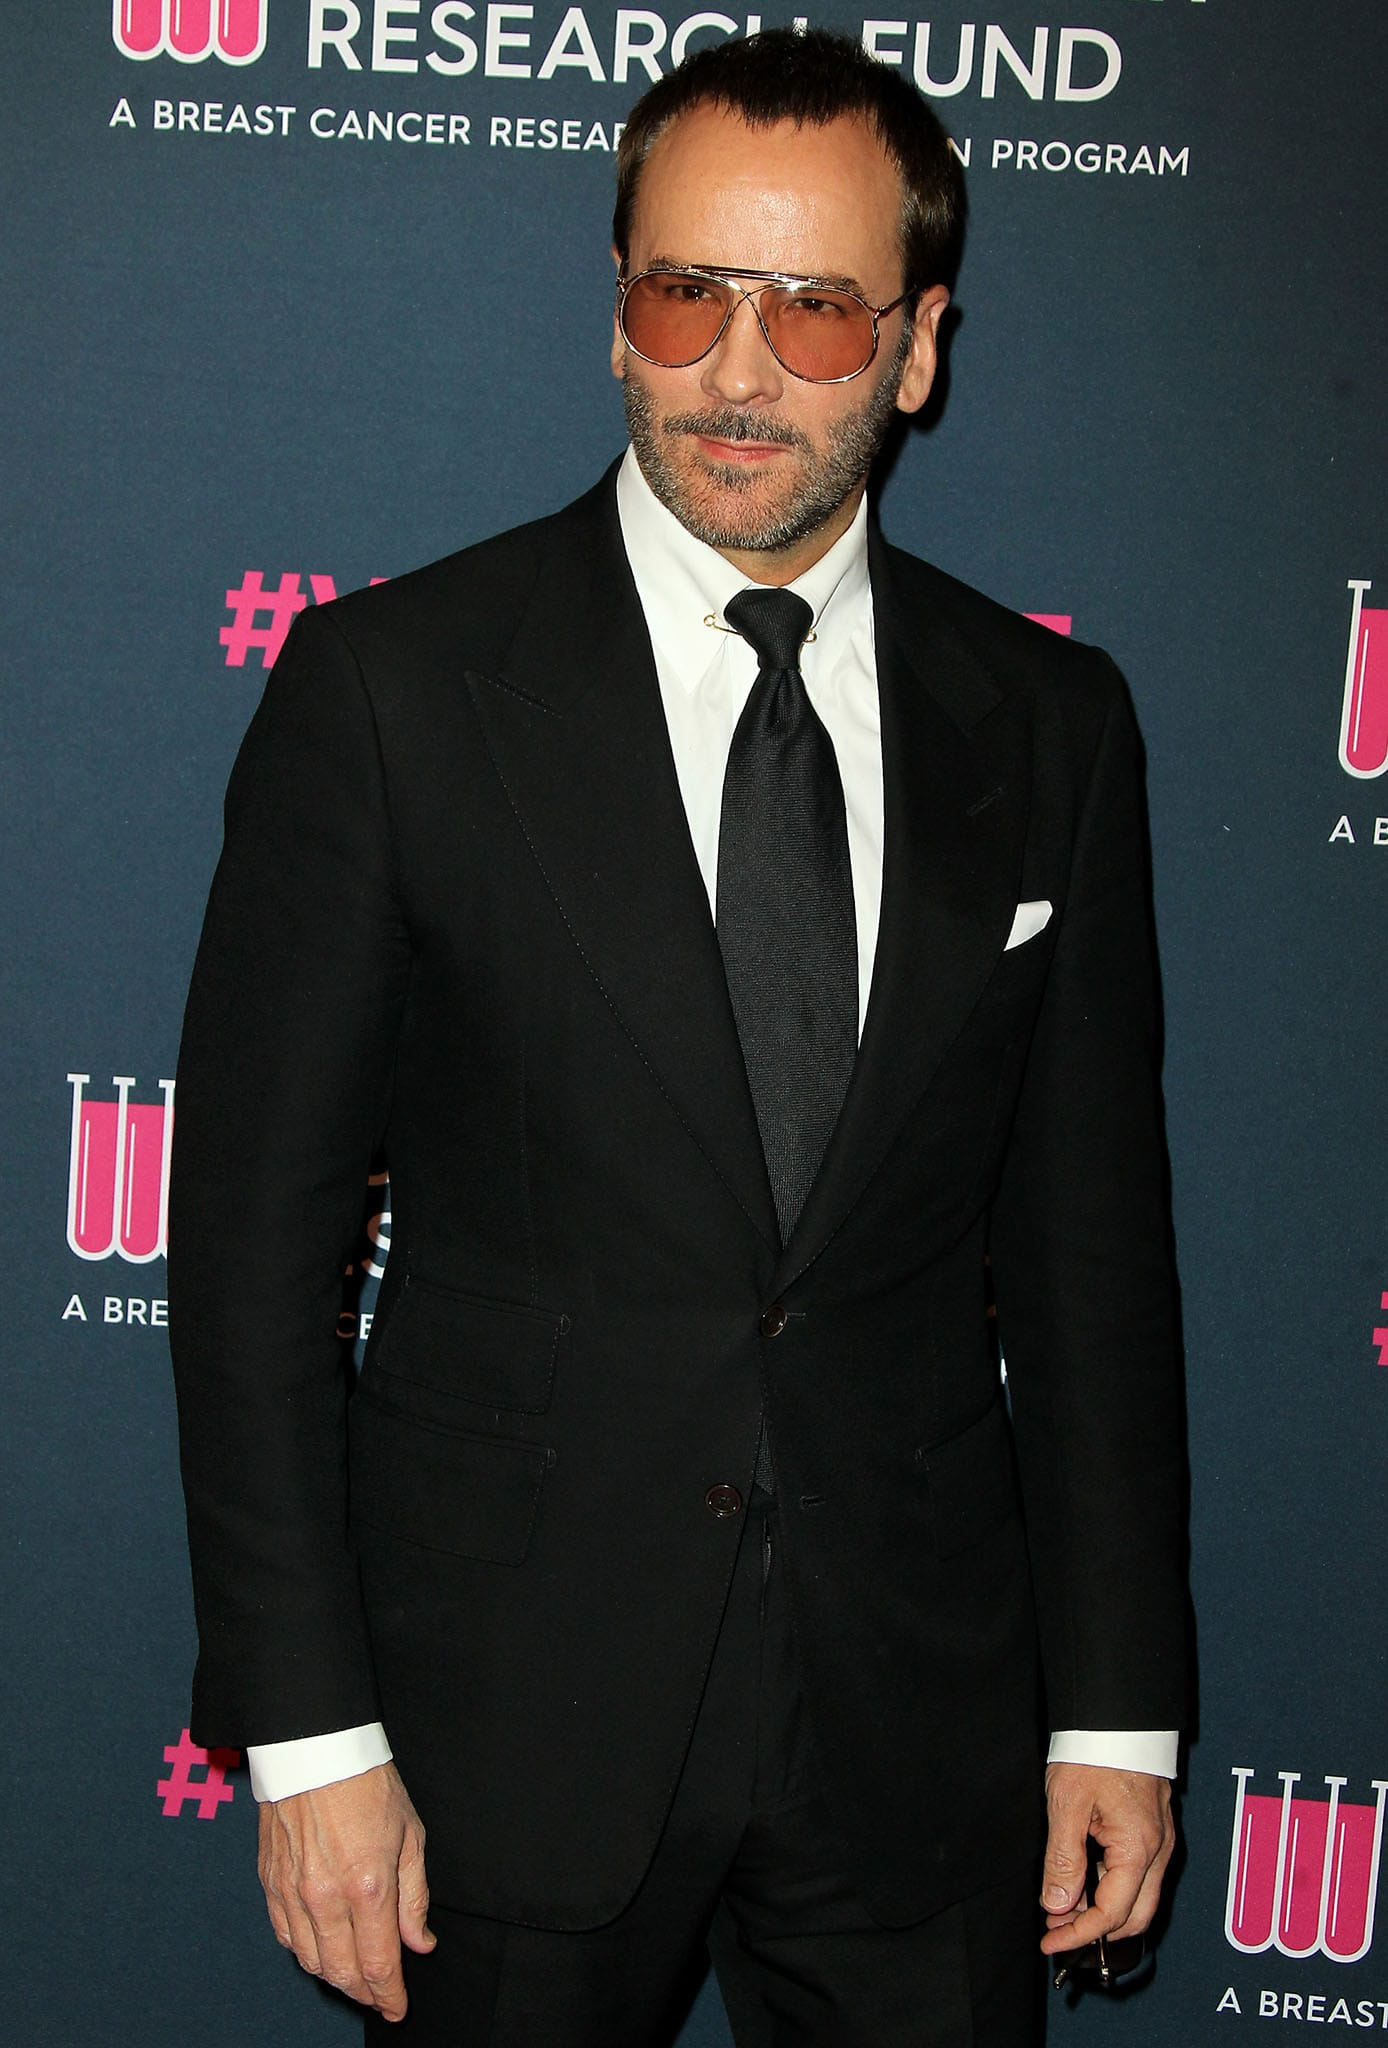 Fashion designer Tom Ford at the Unforgettable Evening event benefiting the Women's Cancer Research Fund on February 27, 2020